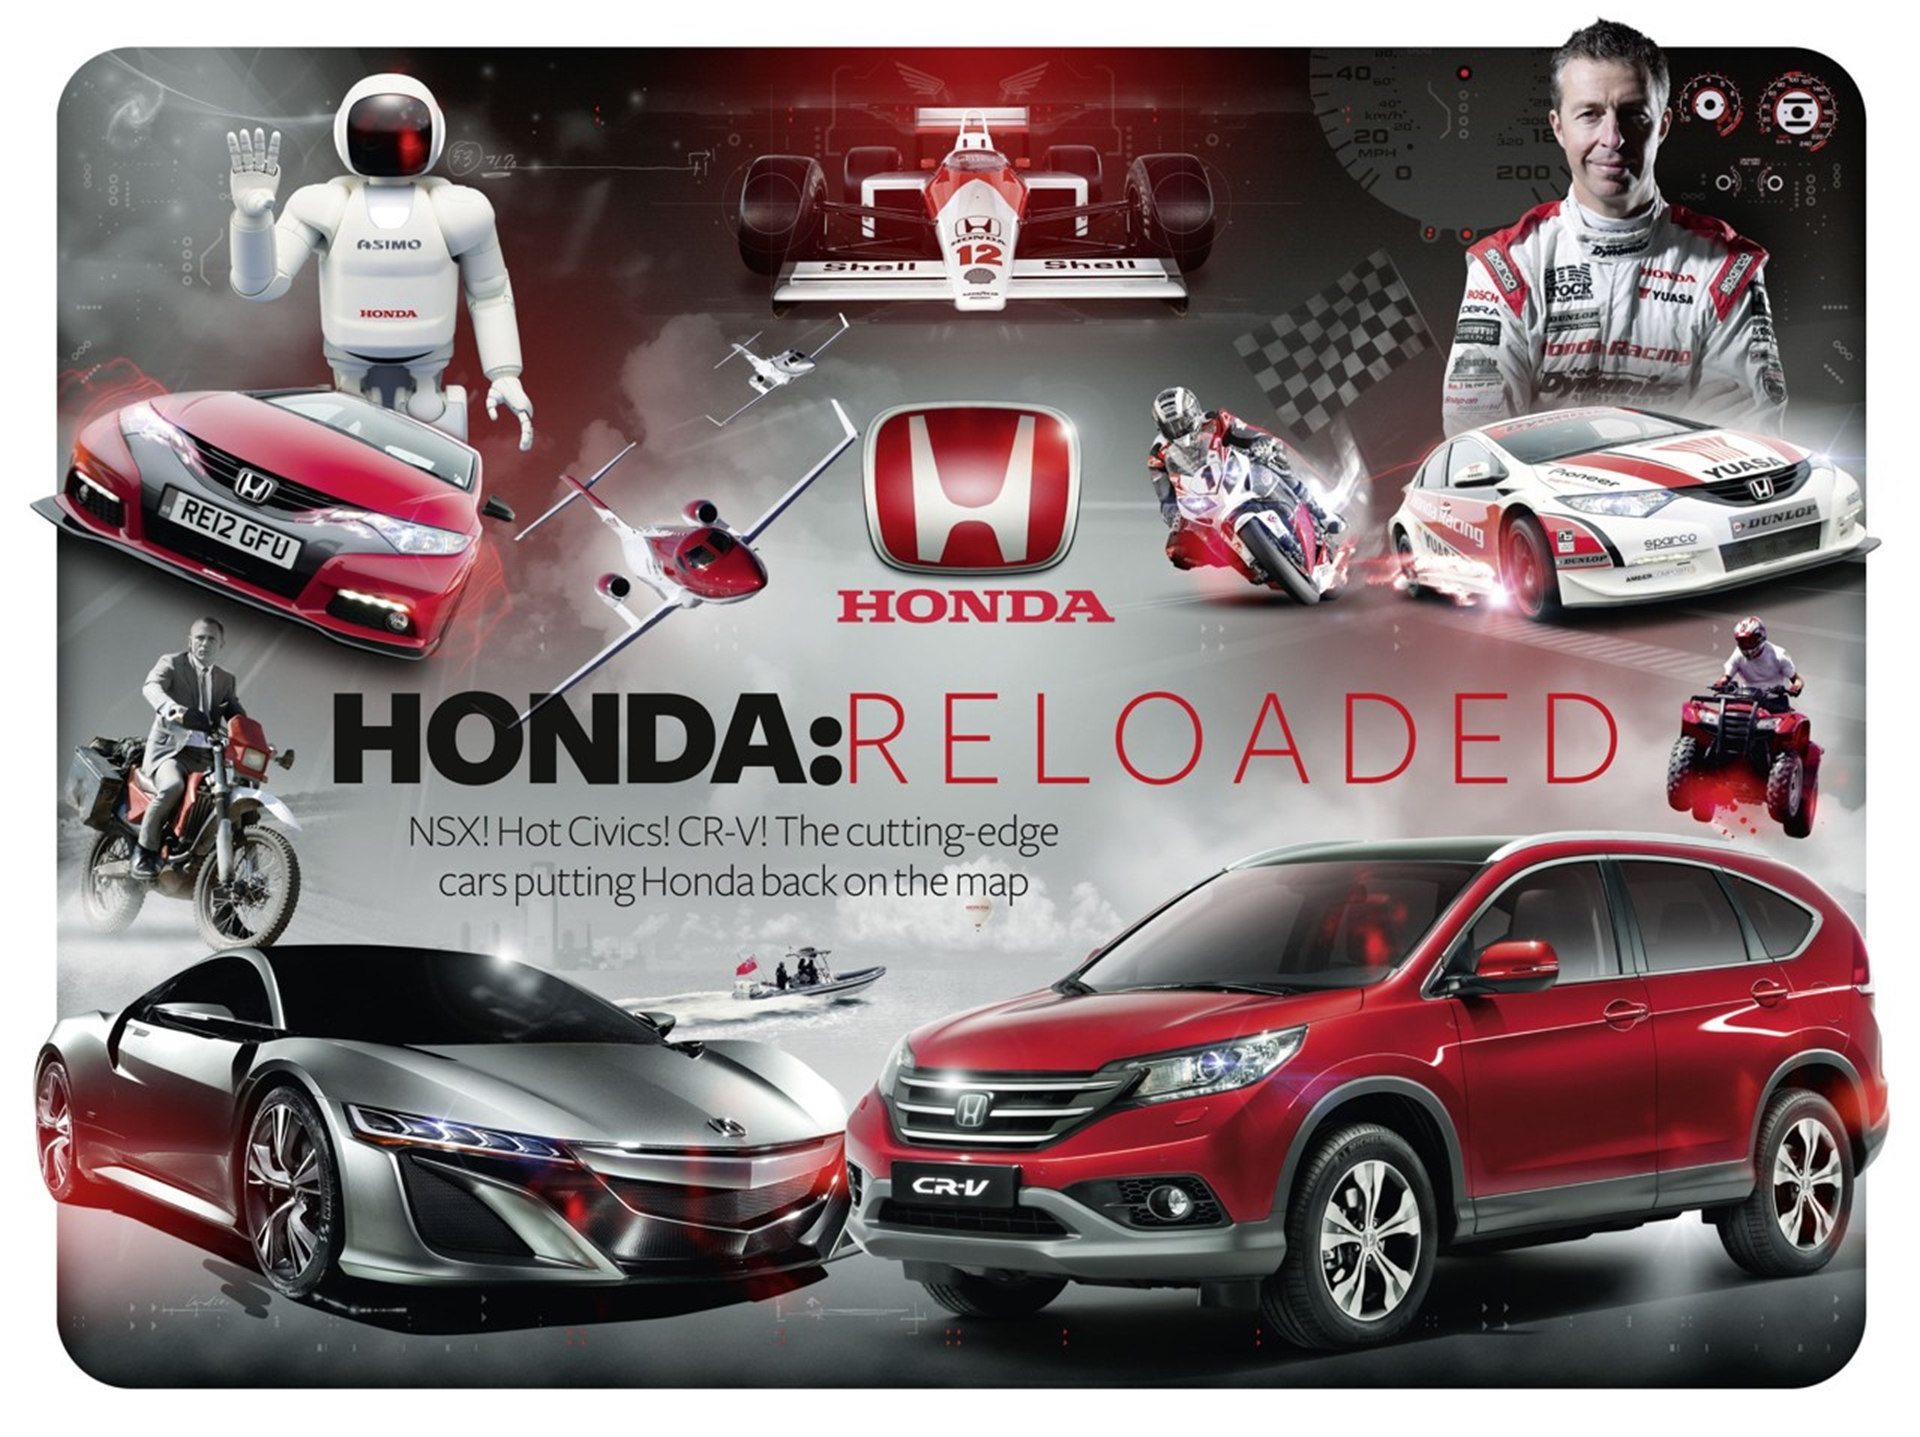 Honda Reloaded